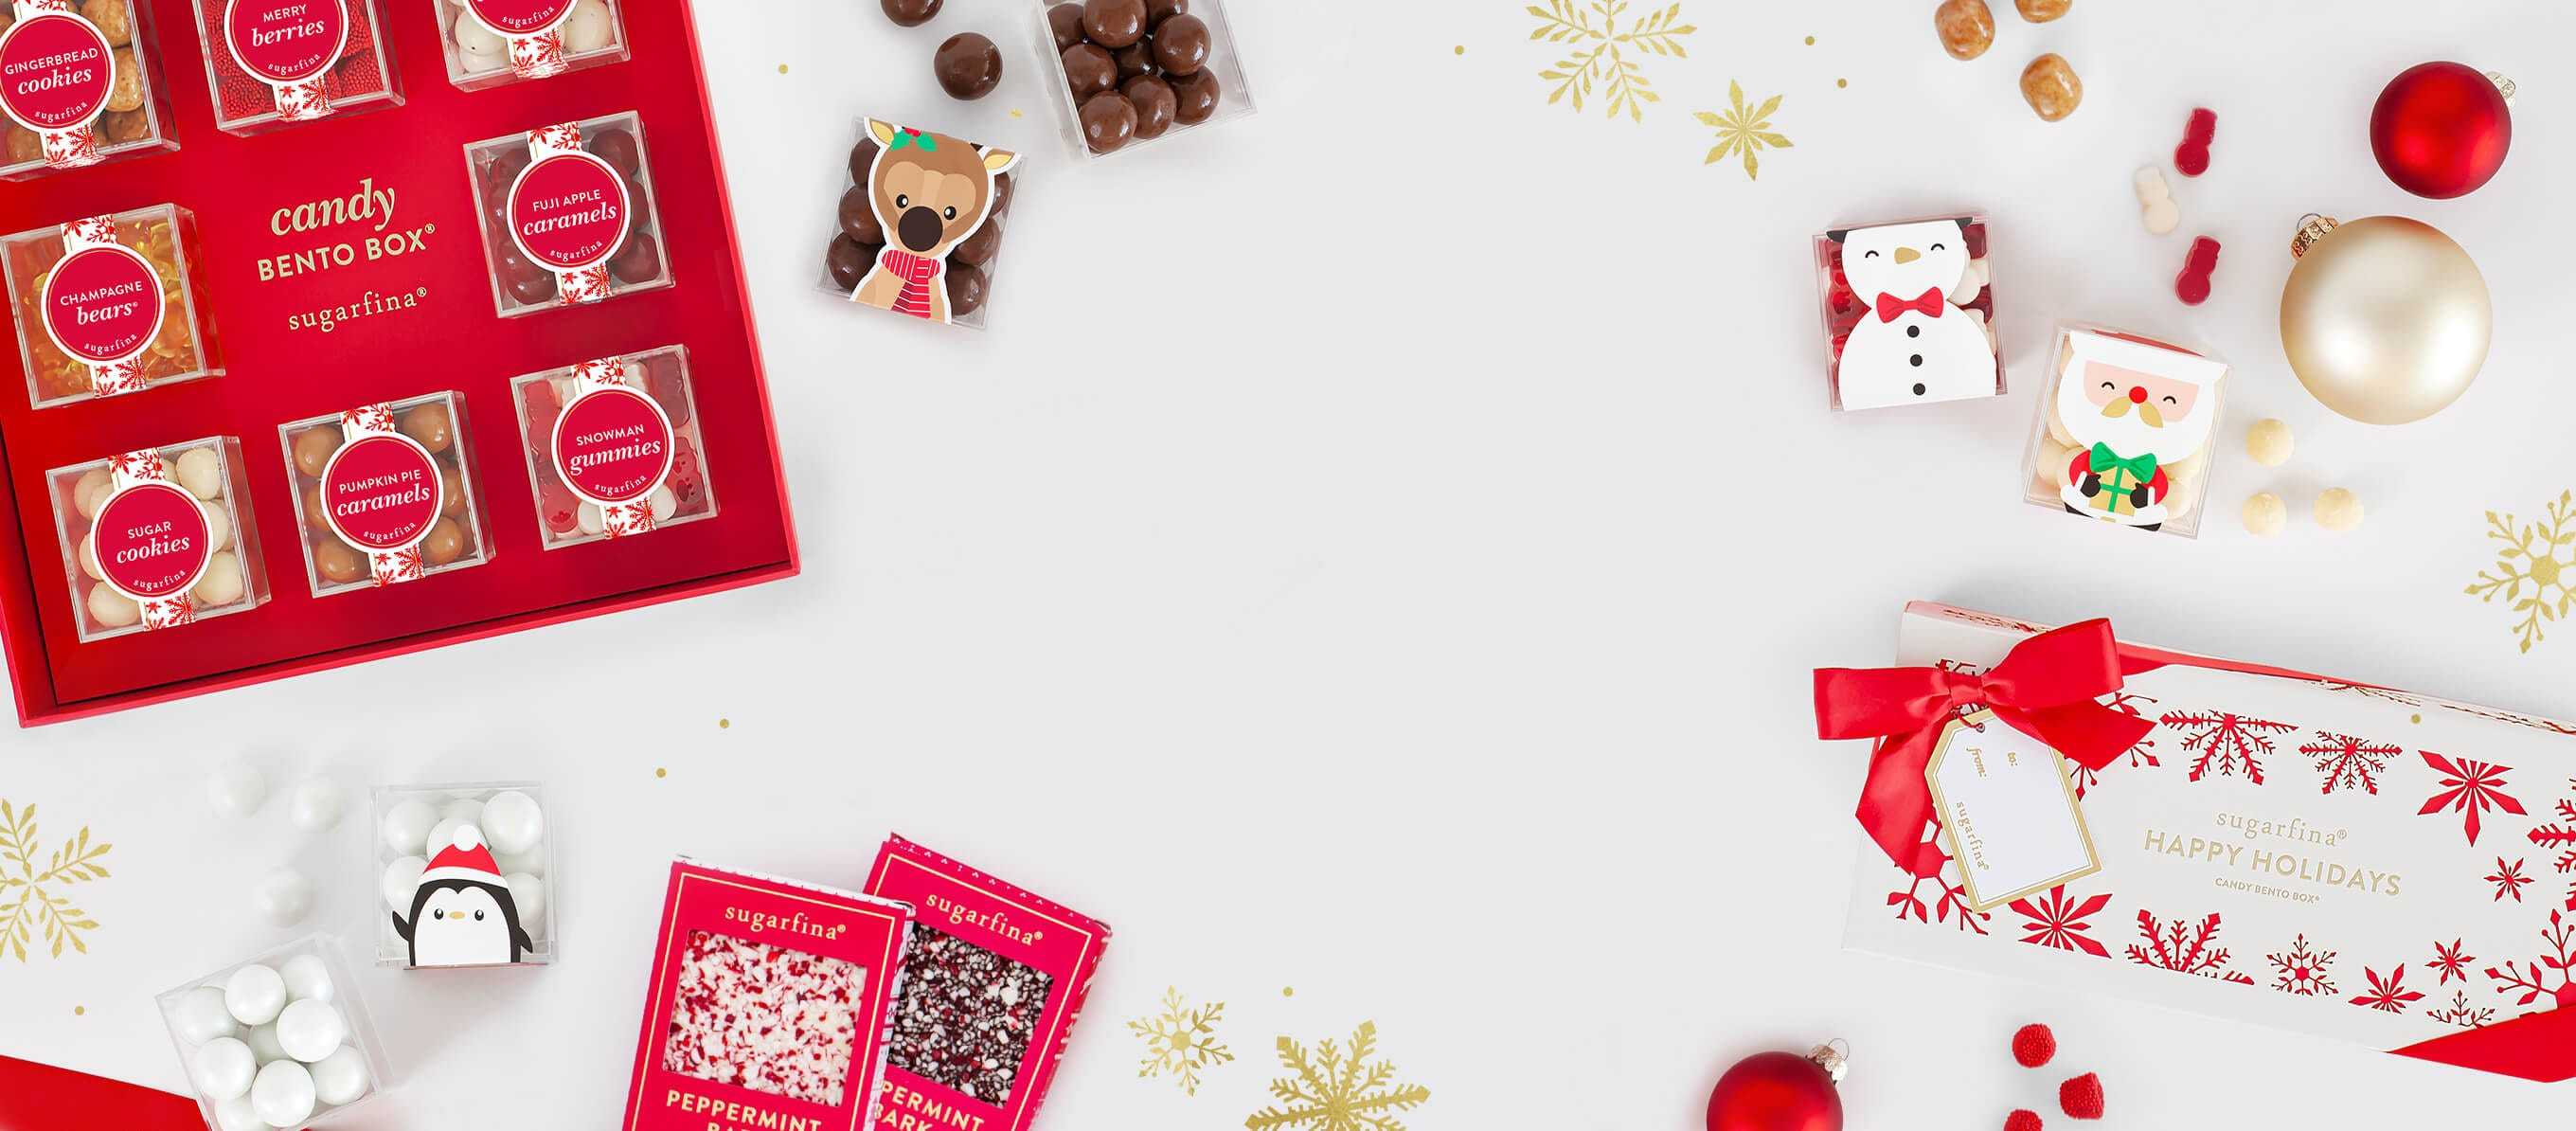 Introducing our Holiday Candy Collection featuring festive seasonal candies decorated with beautiful red and white boxes and little candy cubes of Snowmen, Santa, Reindeer and Penguins